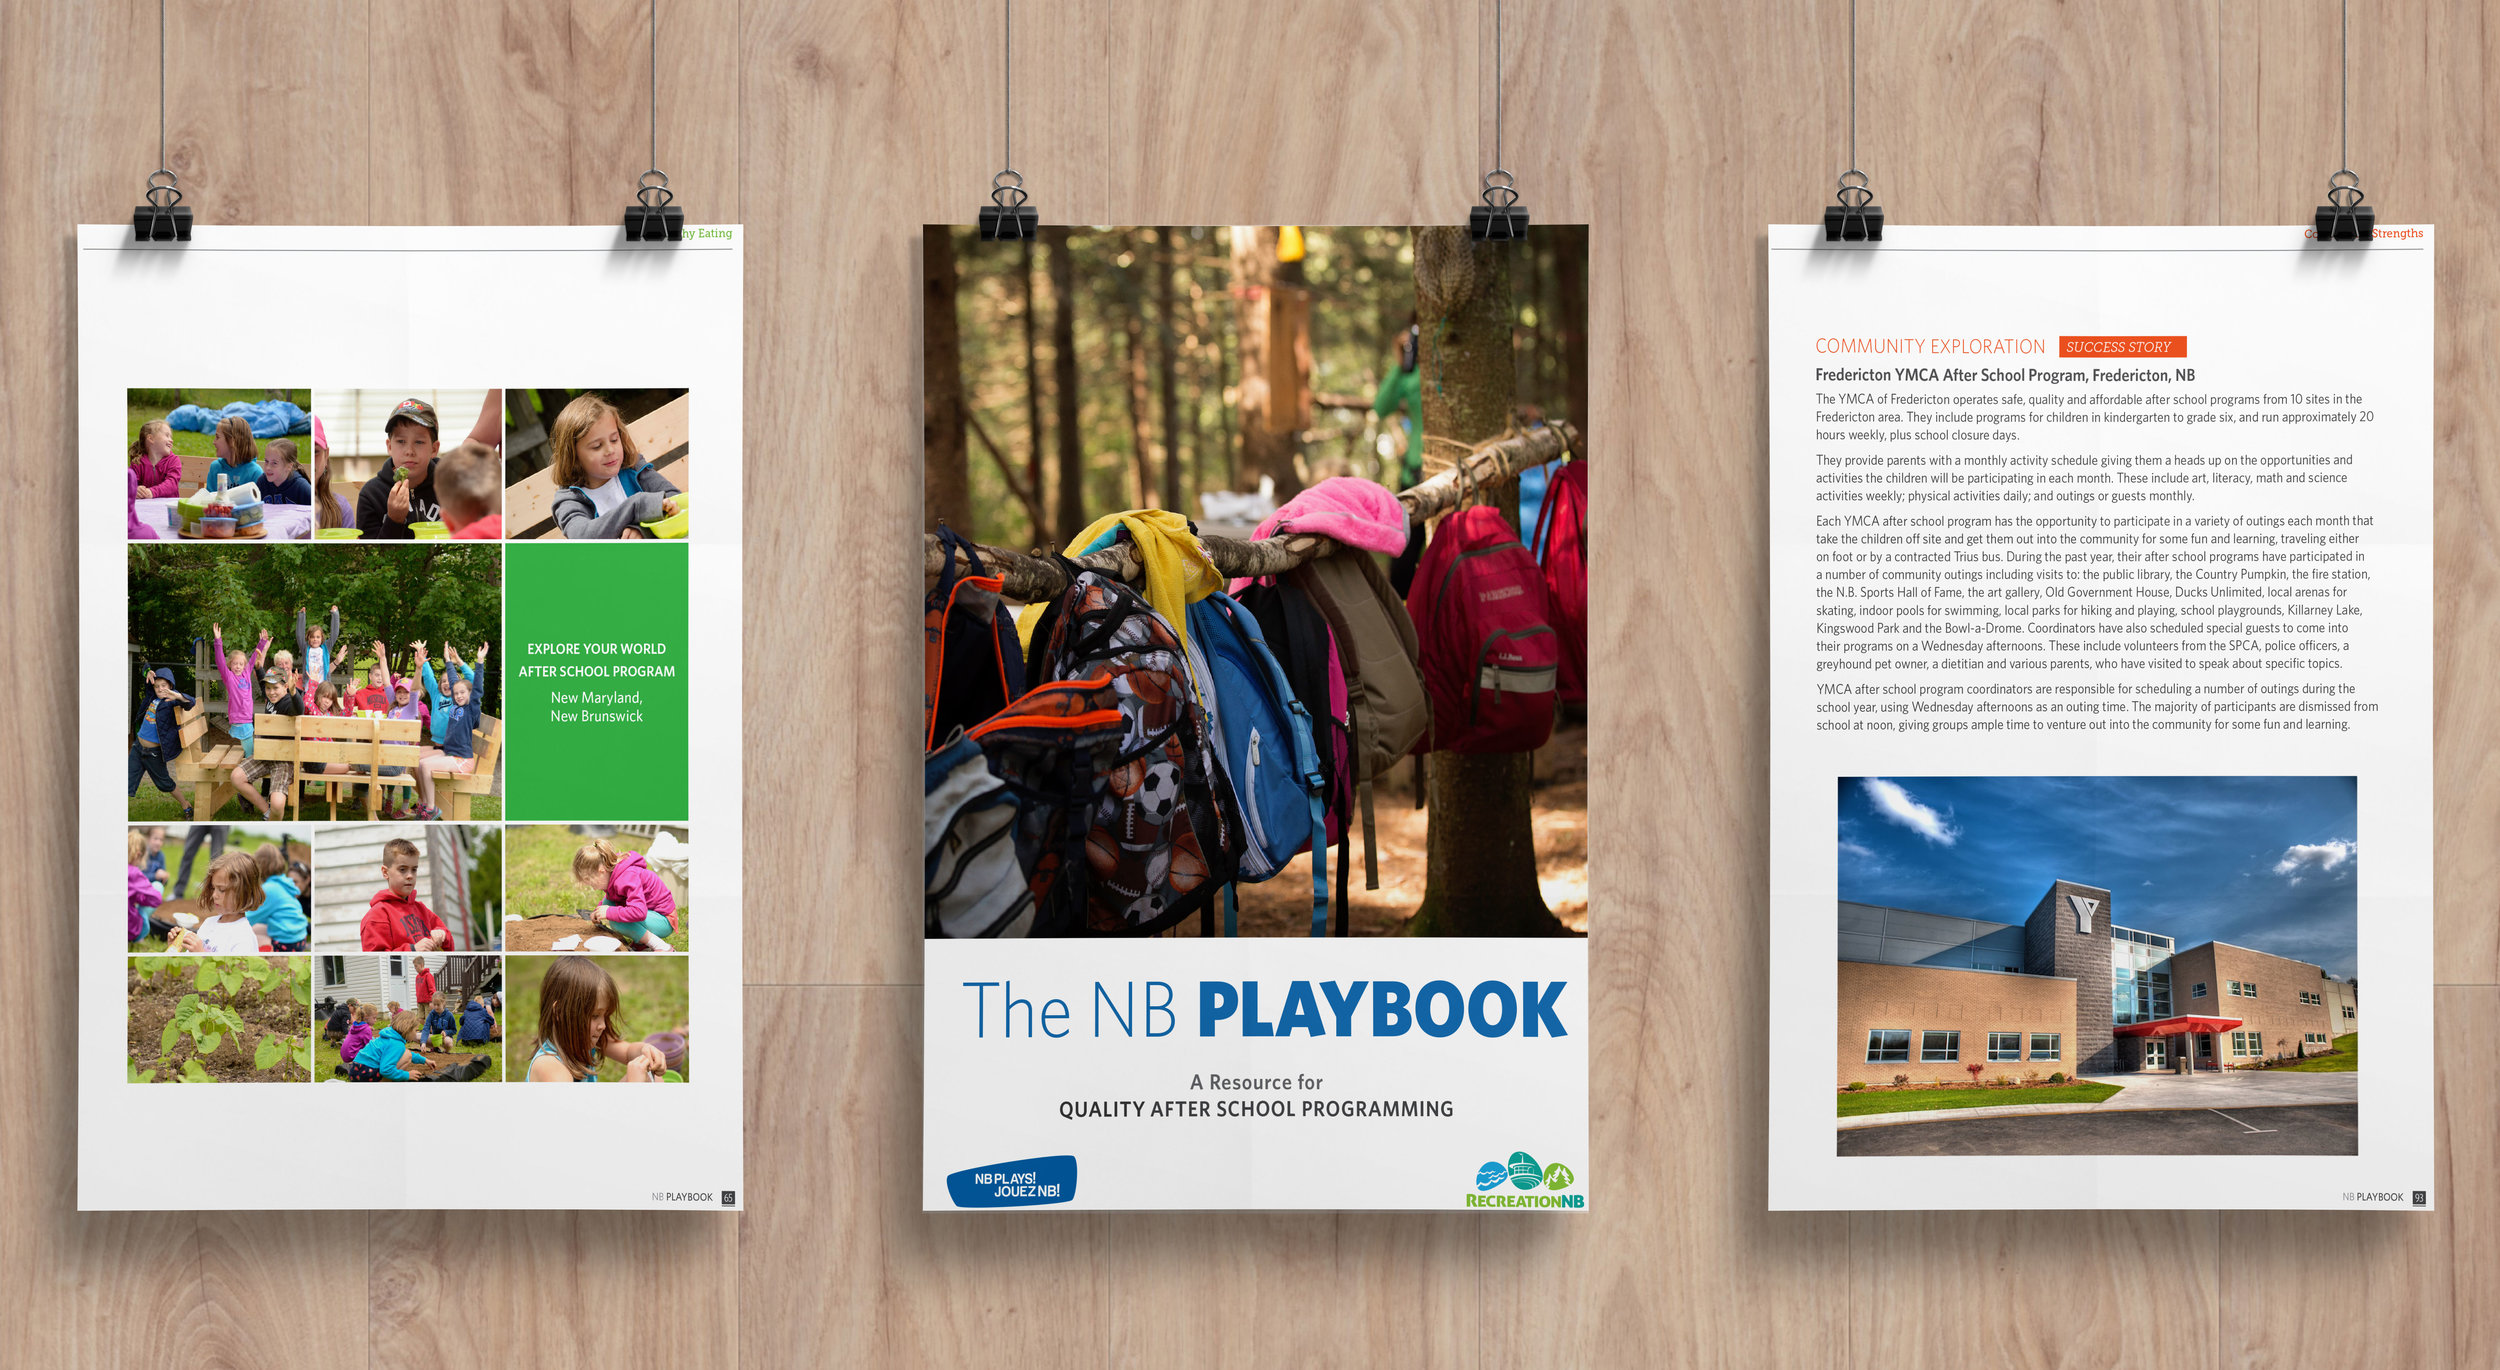 Playbook-Posters-EN.jpg